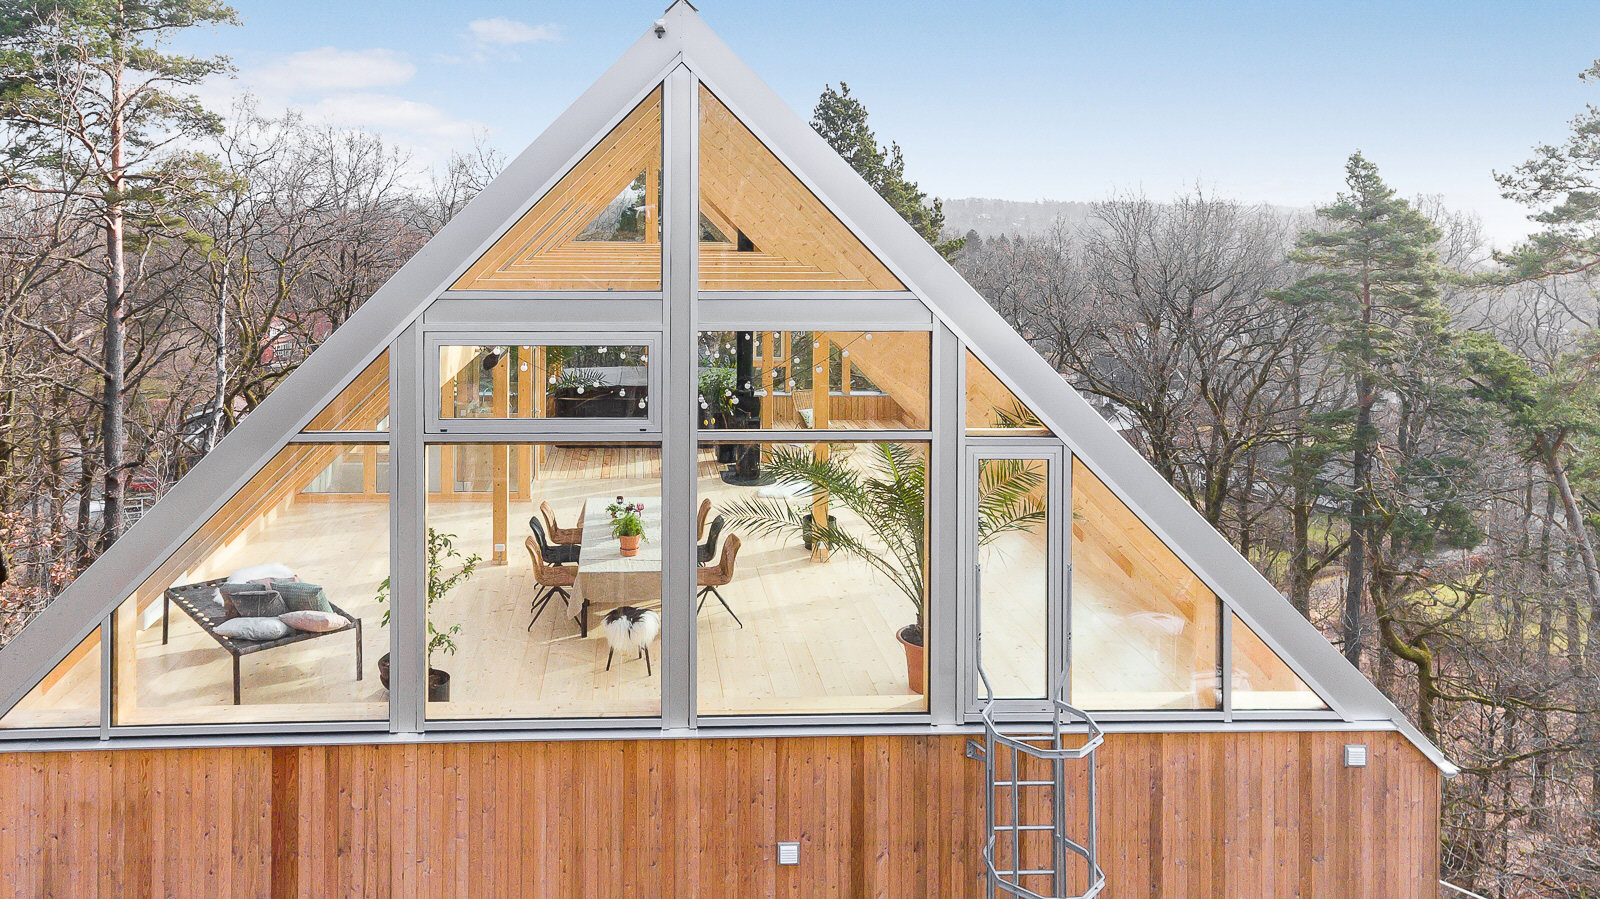 Glass-roofed heaven in Sweden can be yours for $1.3M